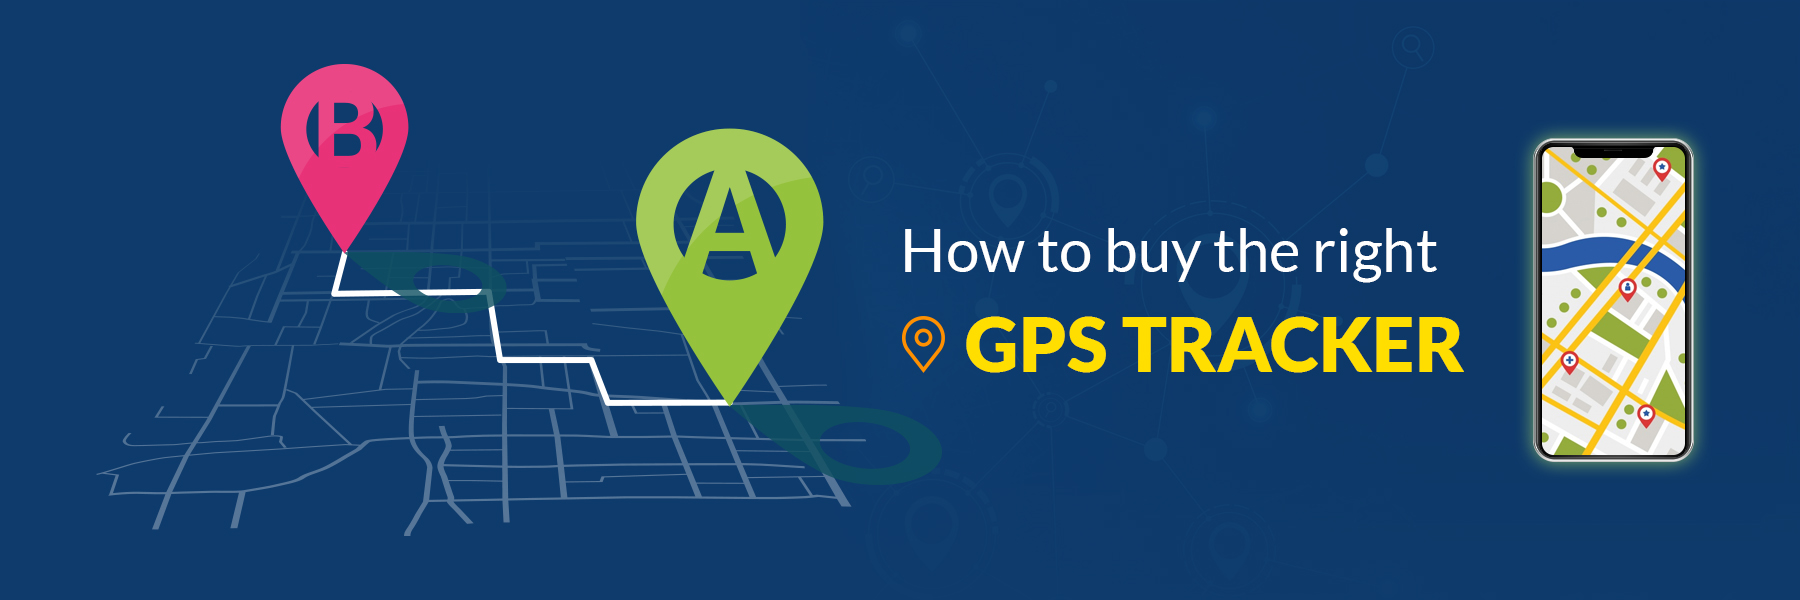 choose-right-GPS-tracker